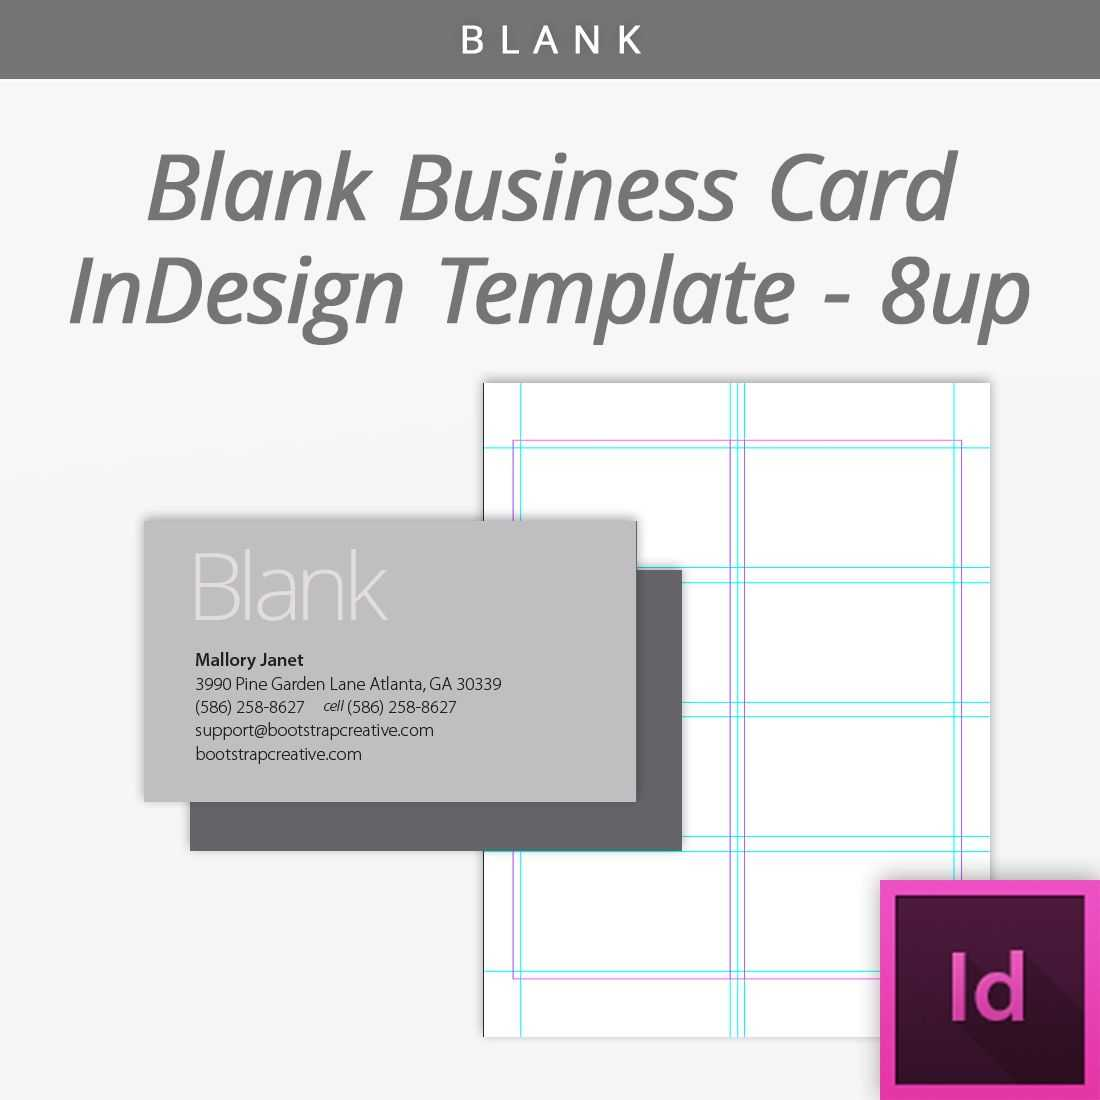 Bootstrap Creative | Blank Business Cards, Indesign Within Blank Business Card Template Download